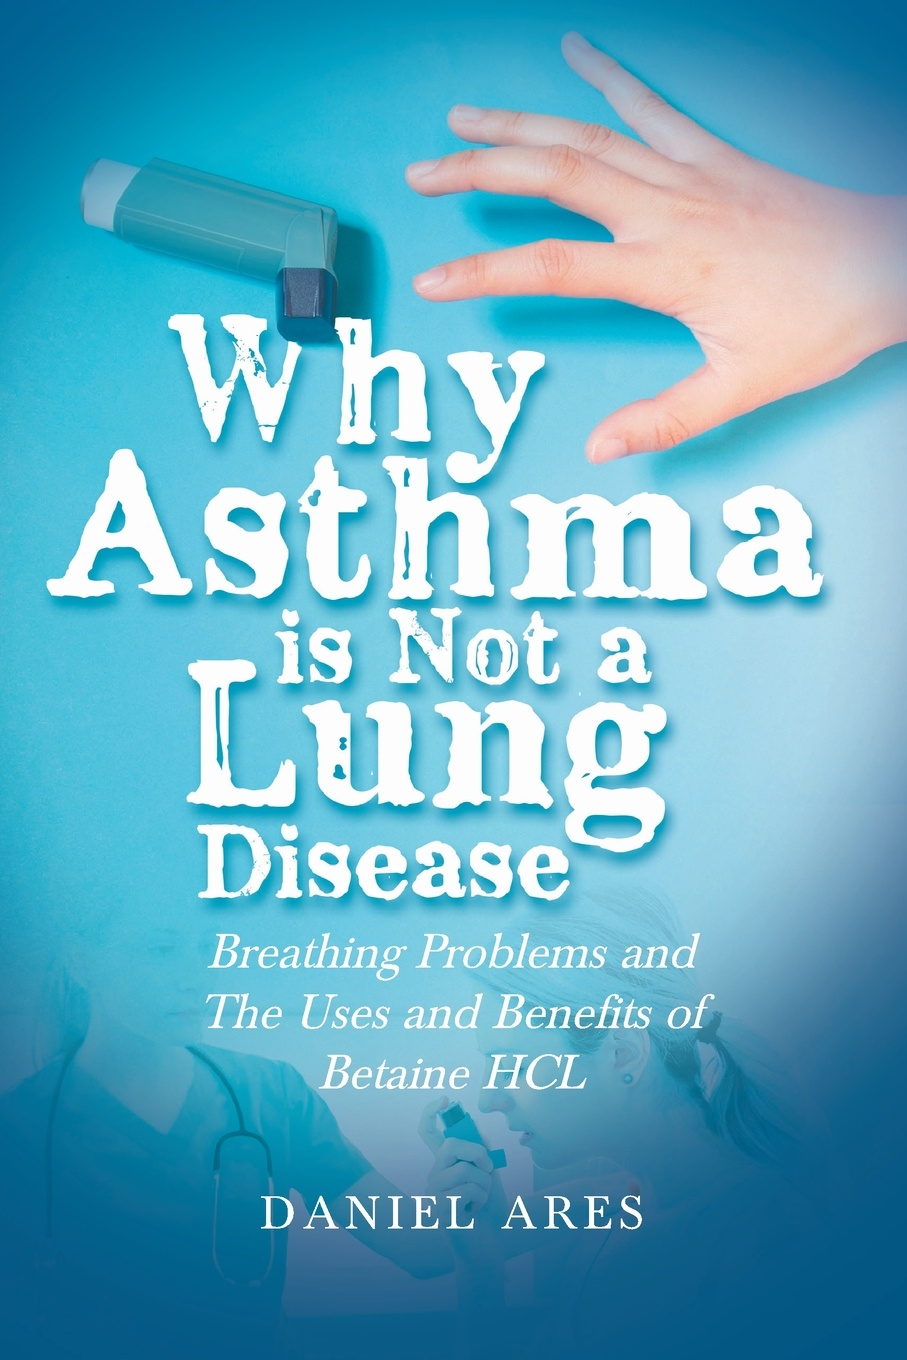 Why Asthma is Not a Lung Disease. Breathing Problems and The Uses and Benefits of Betaine HCL. Daniel Ares